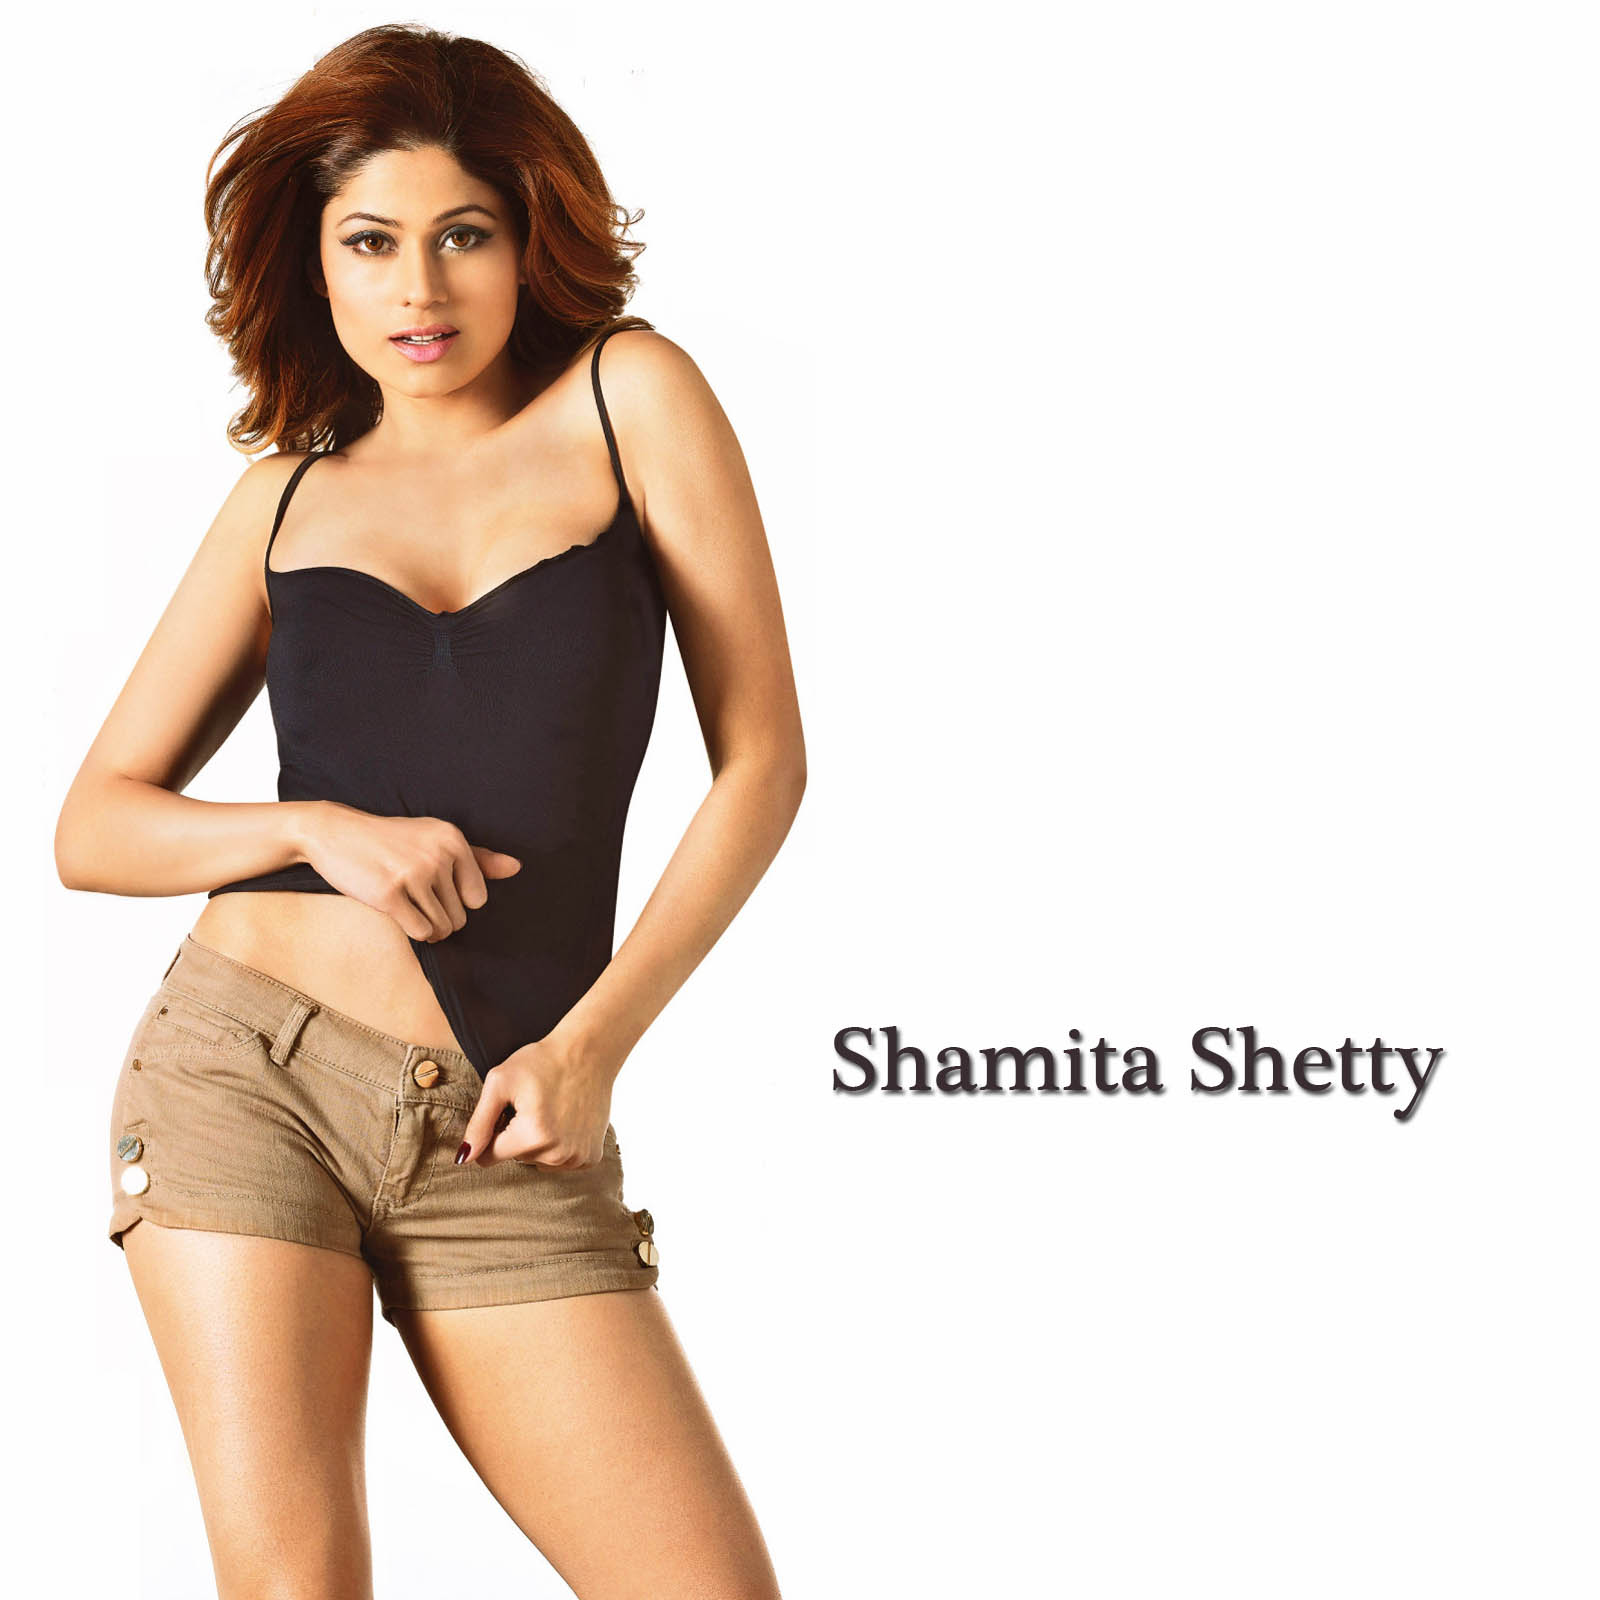 Shamita shetty nude in function